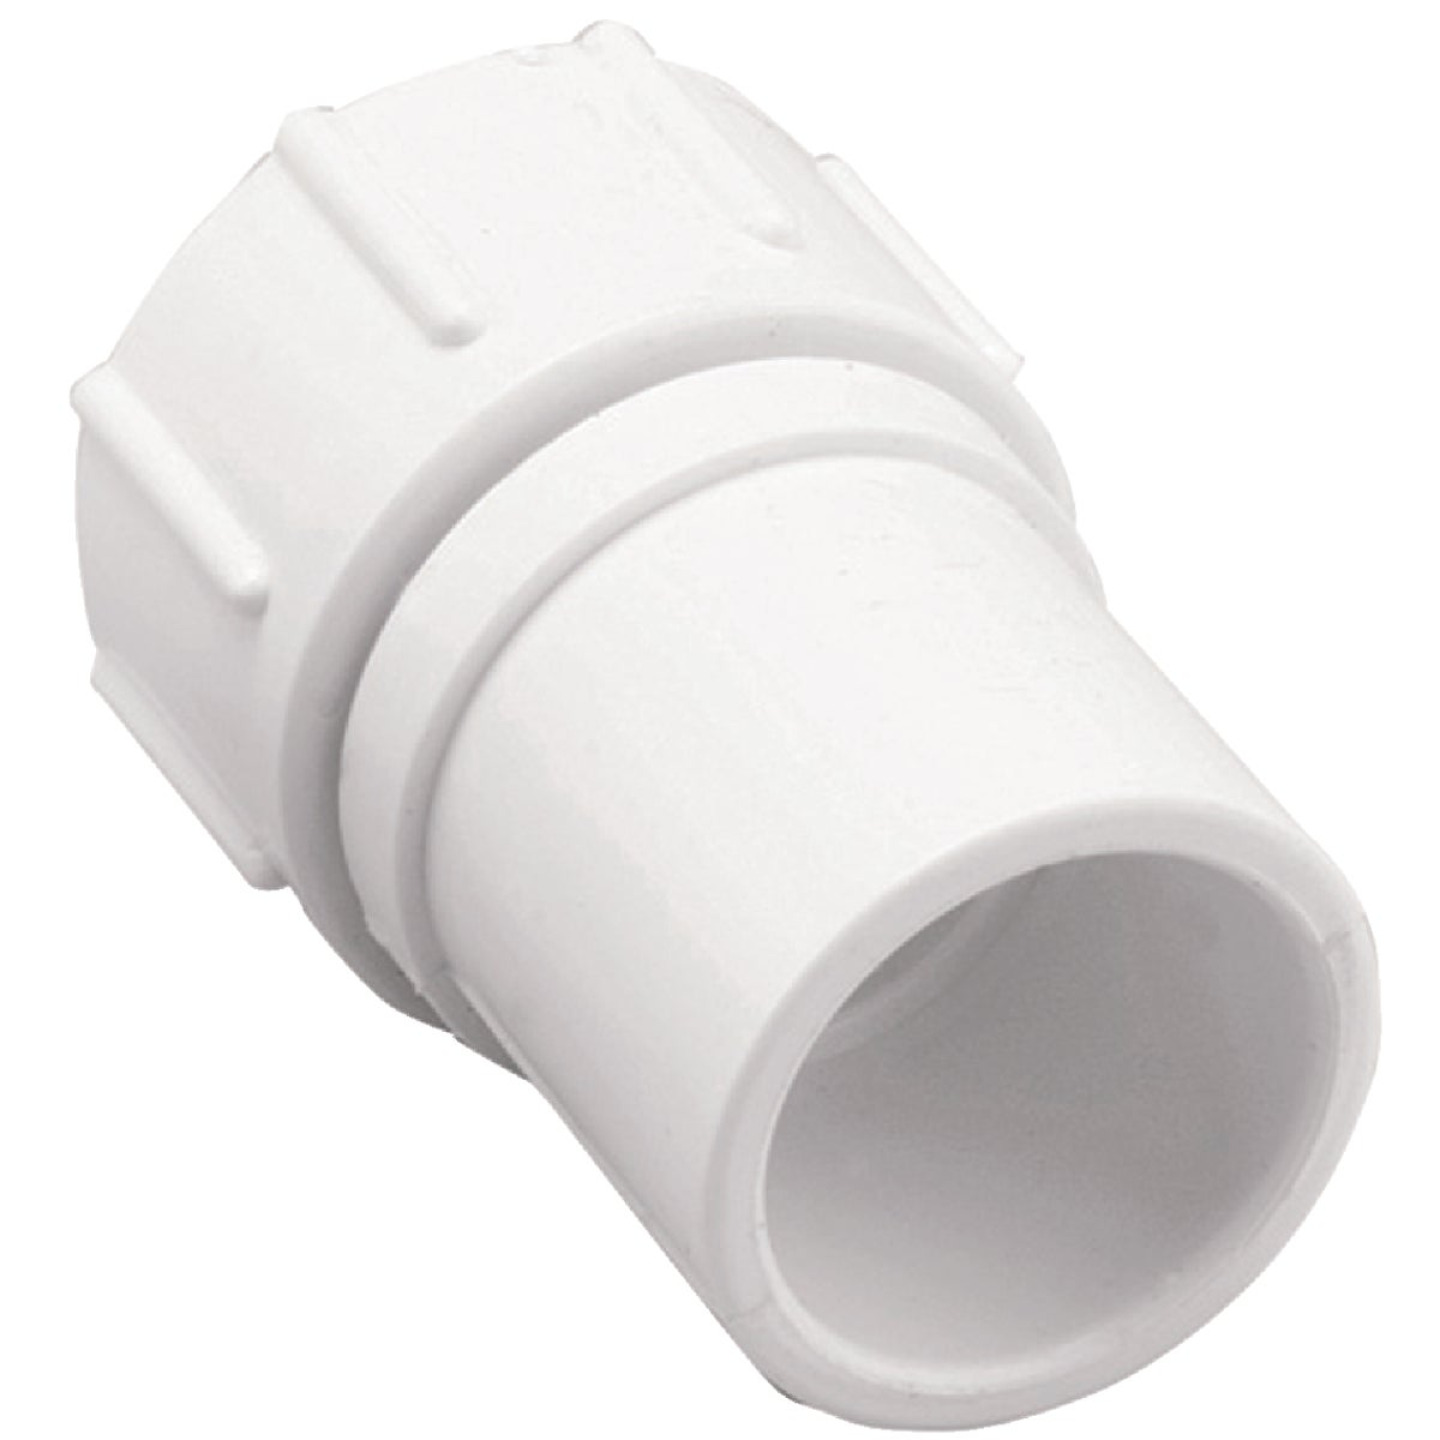 Orbit 1/2 In. PVC Swivel Hose Adapter Image 1